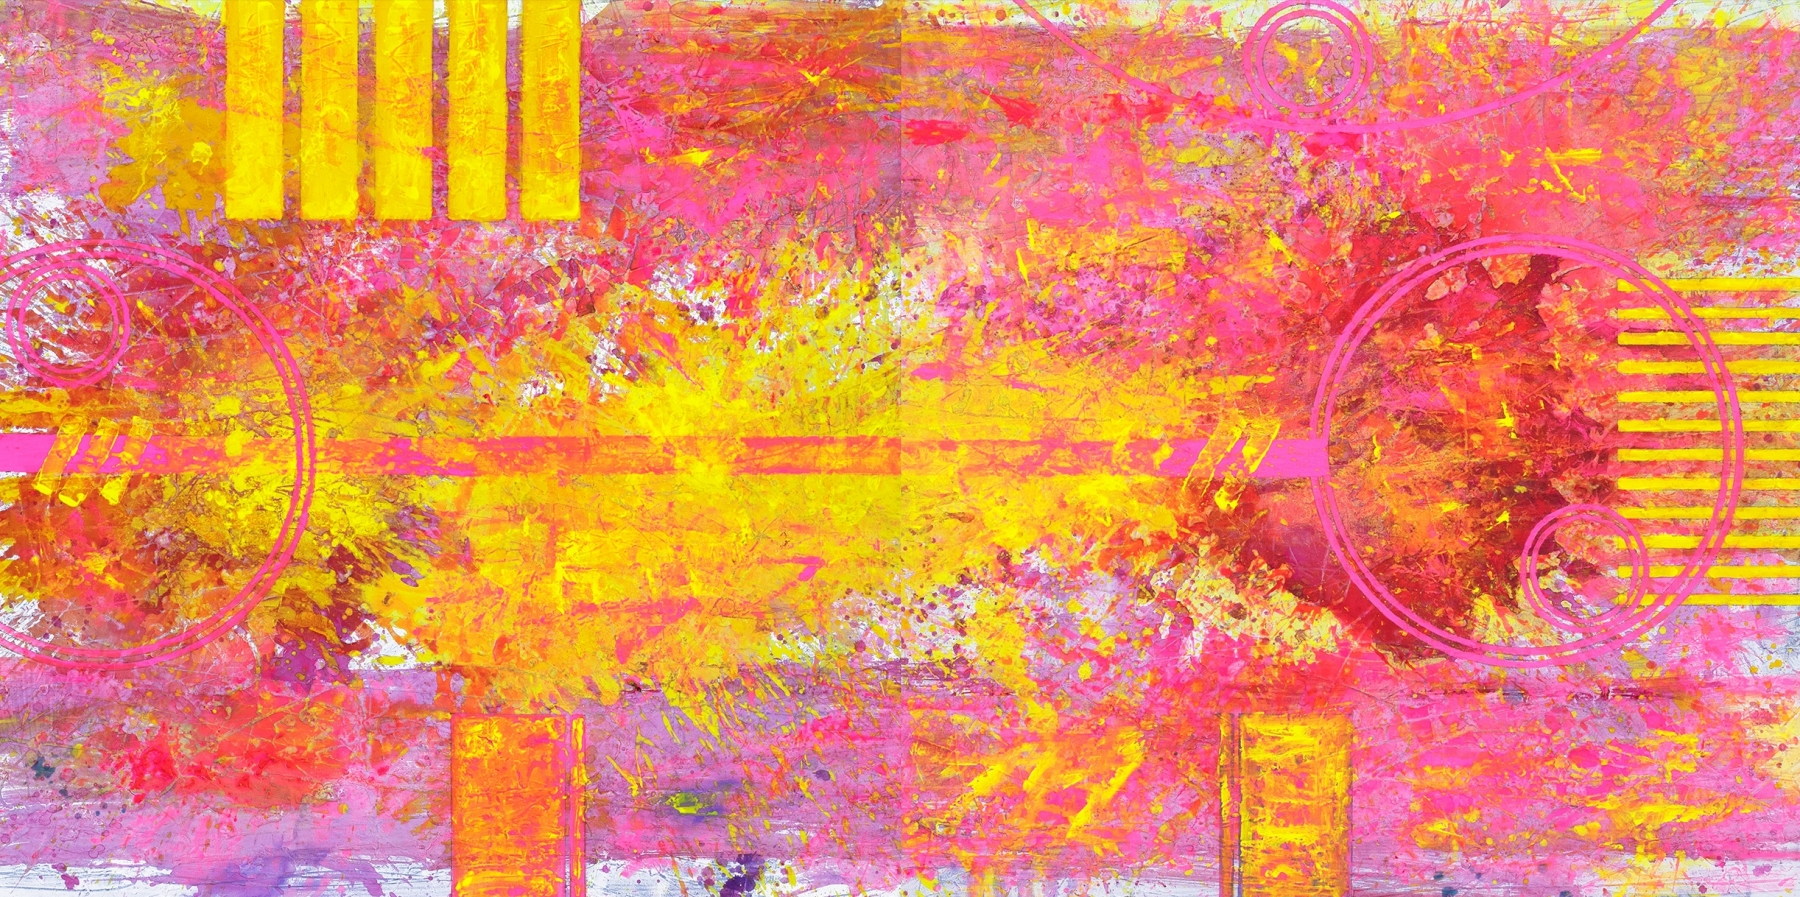 J. Steven Manolis, Biscayne Bay (Sunrise) 2019, Acrylic and Latex enamel on canvas, 48 x 96 inches, pink abstract art